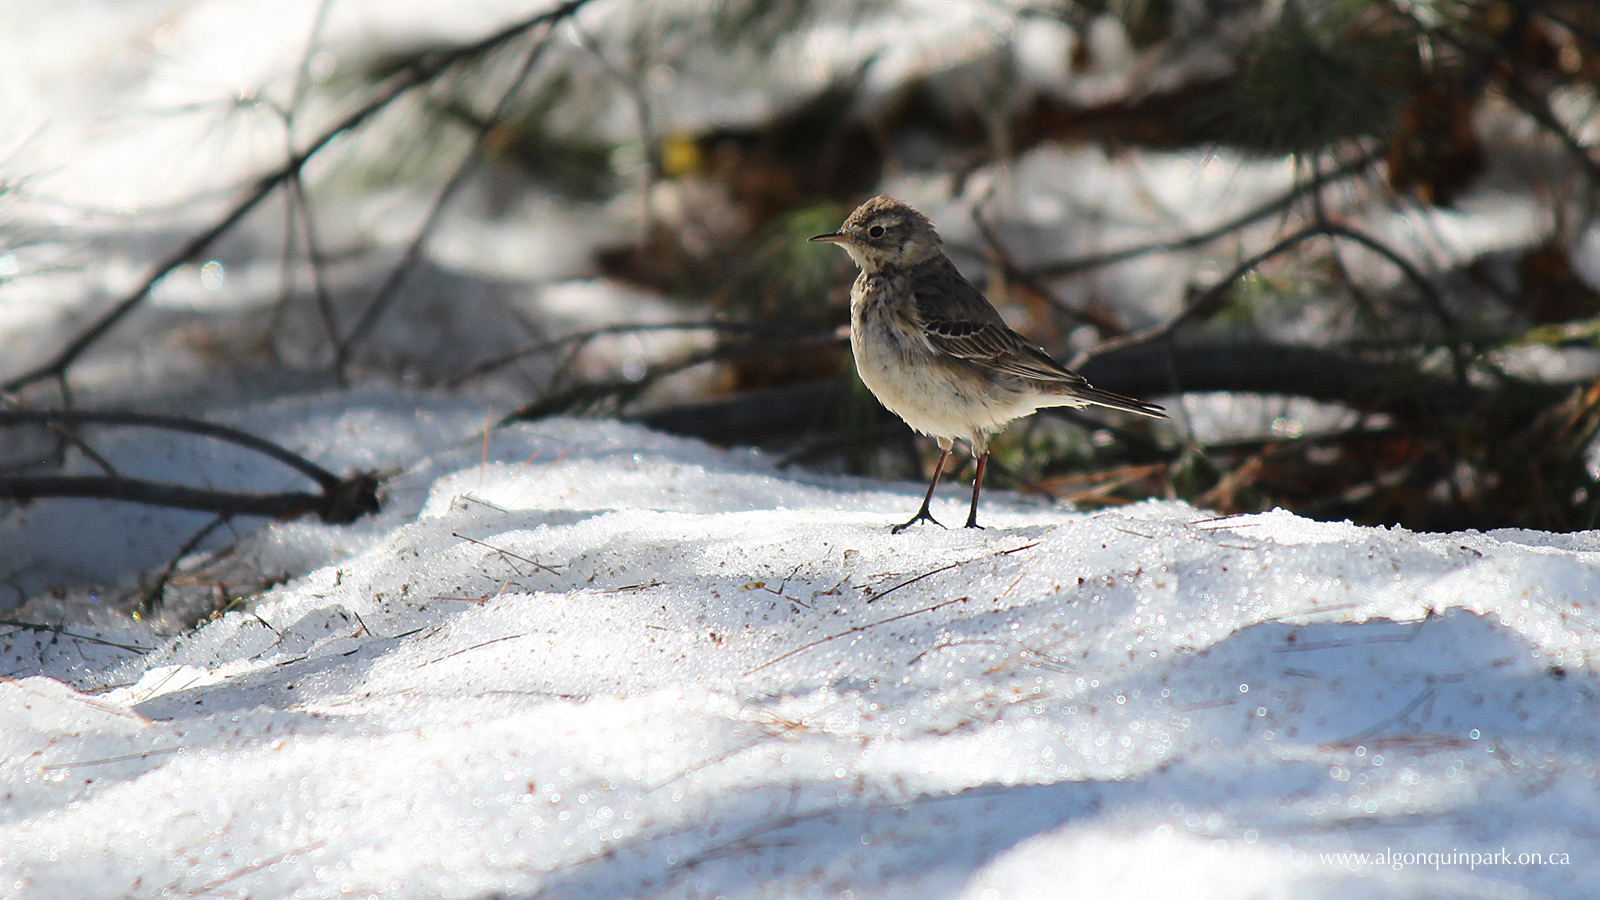 American Pipit at the Algonquin Park Visitor Centre